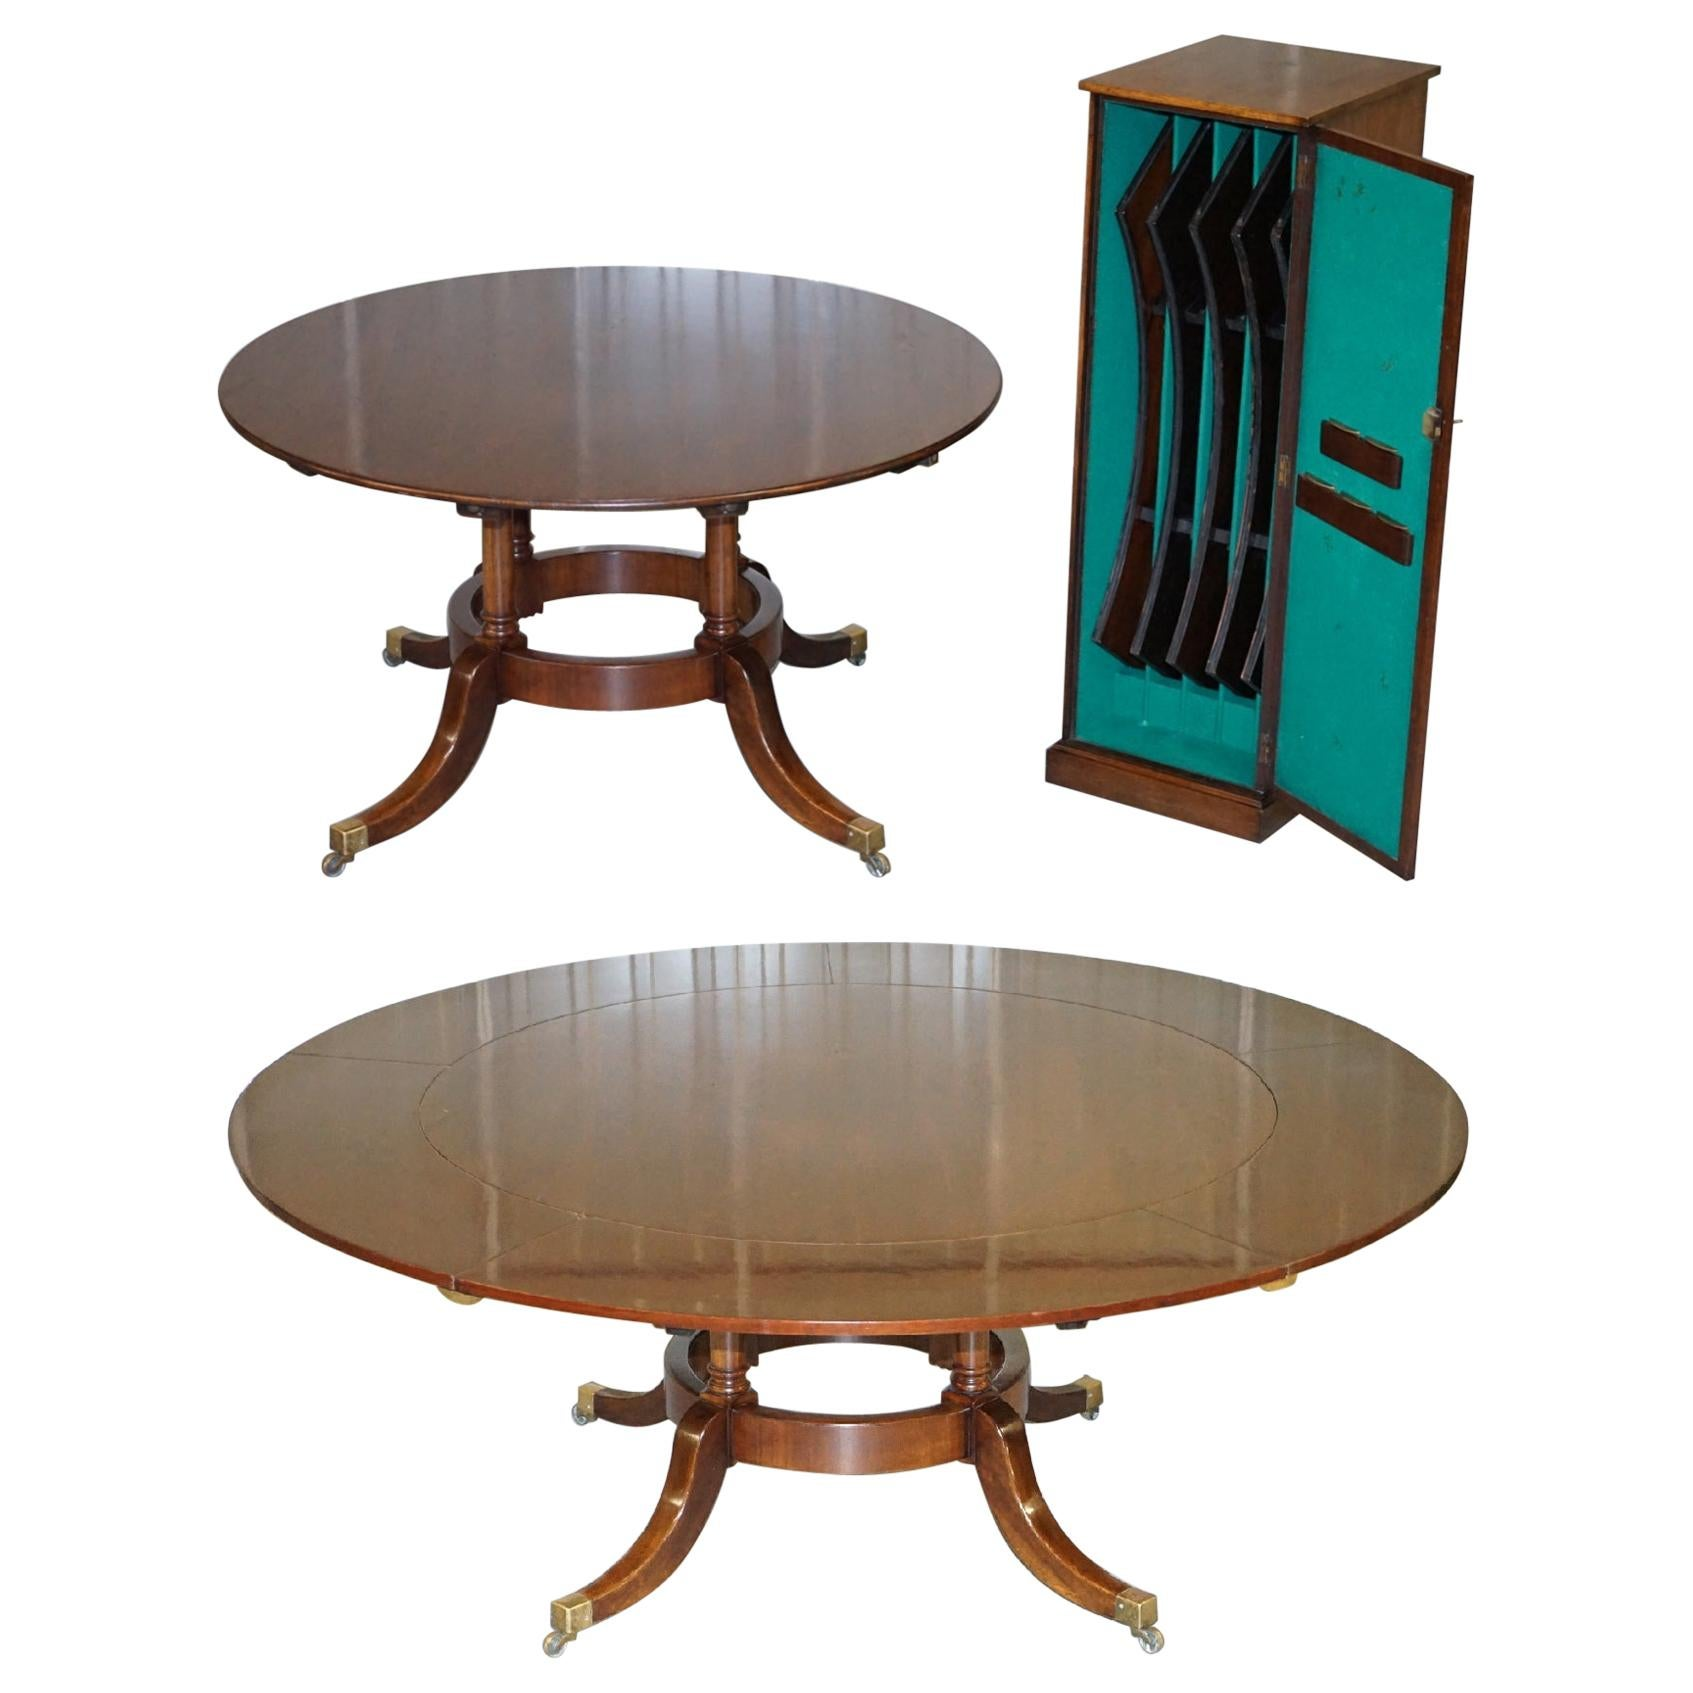 Vintage Solid Mahogany Extending Round Jupe Dining Table with Cabinet & Fittings